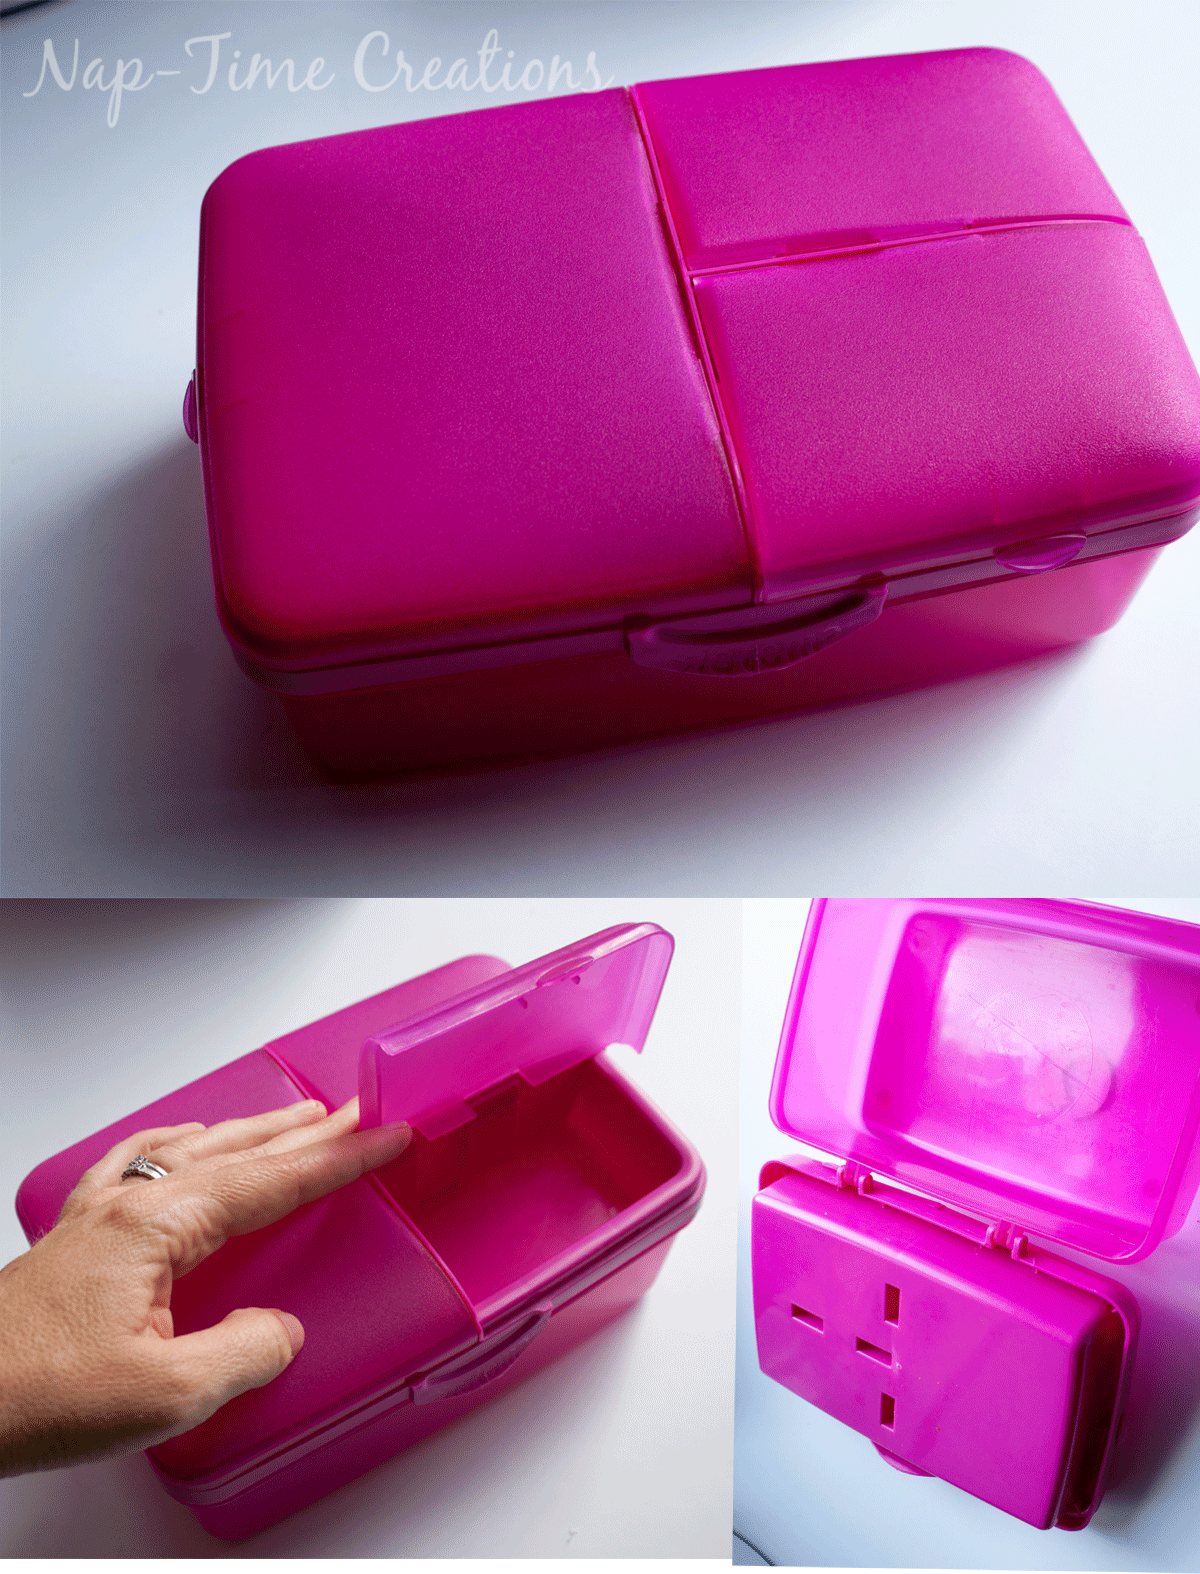 the-Best-School-Lunch-boxes-a-review-from-Nap-Time-Creations7